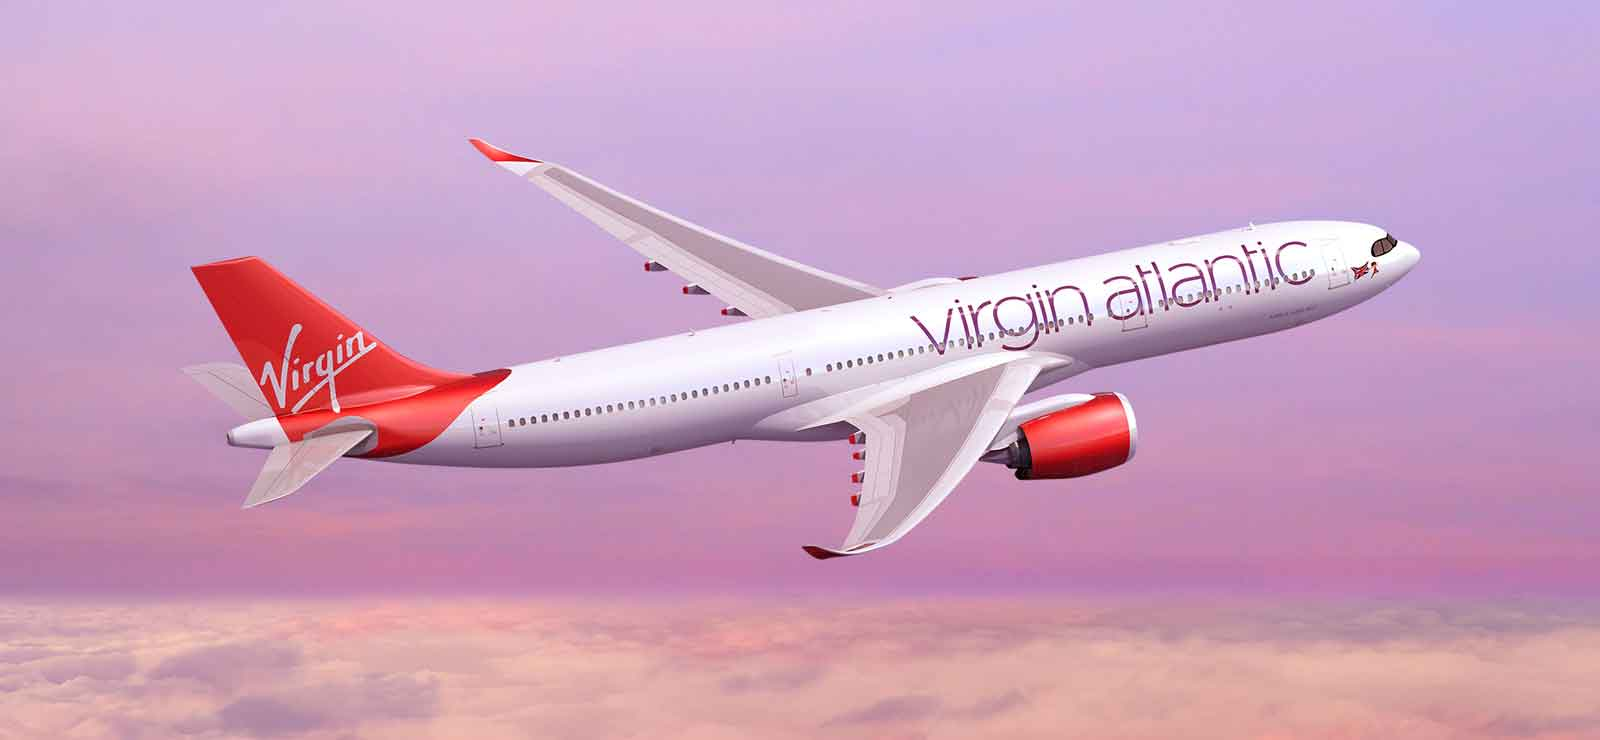 Virgin Atlantic place order for Airbus A330neo